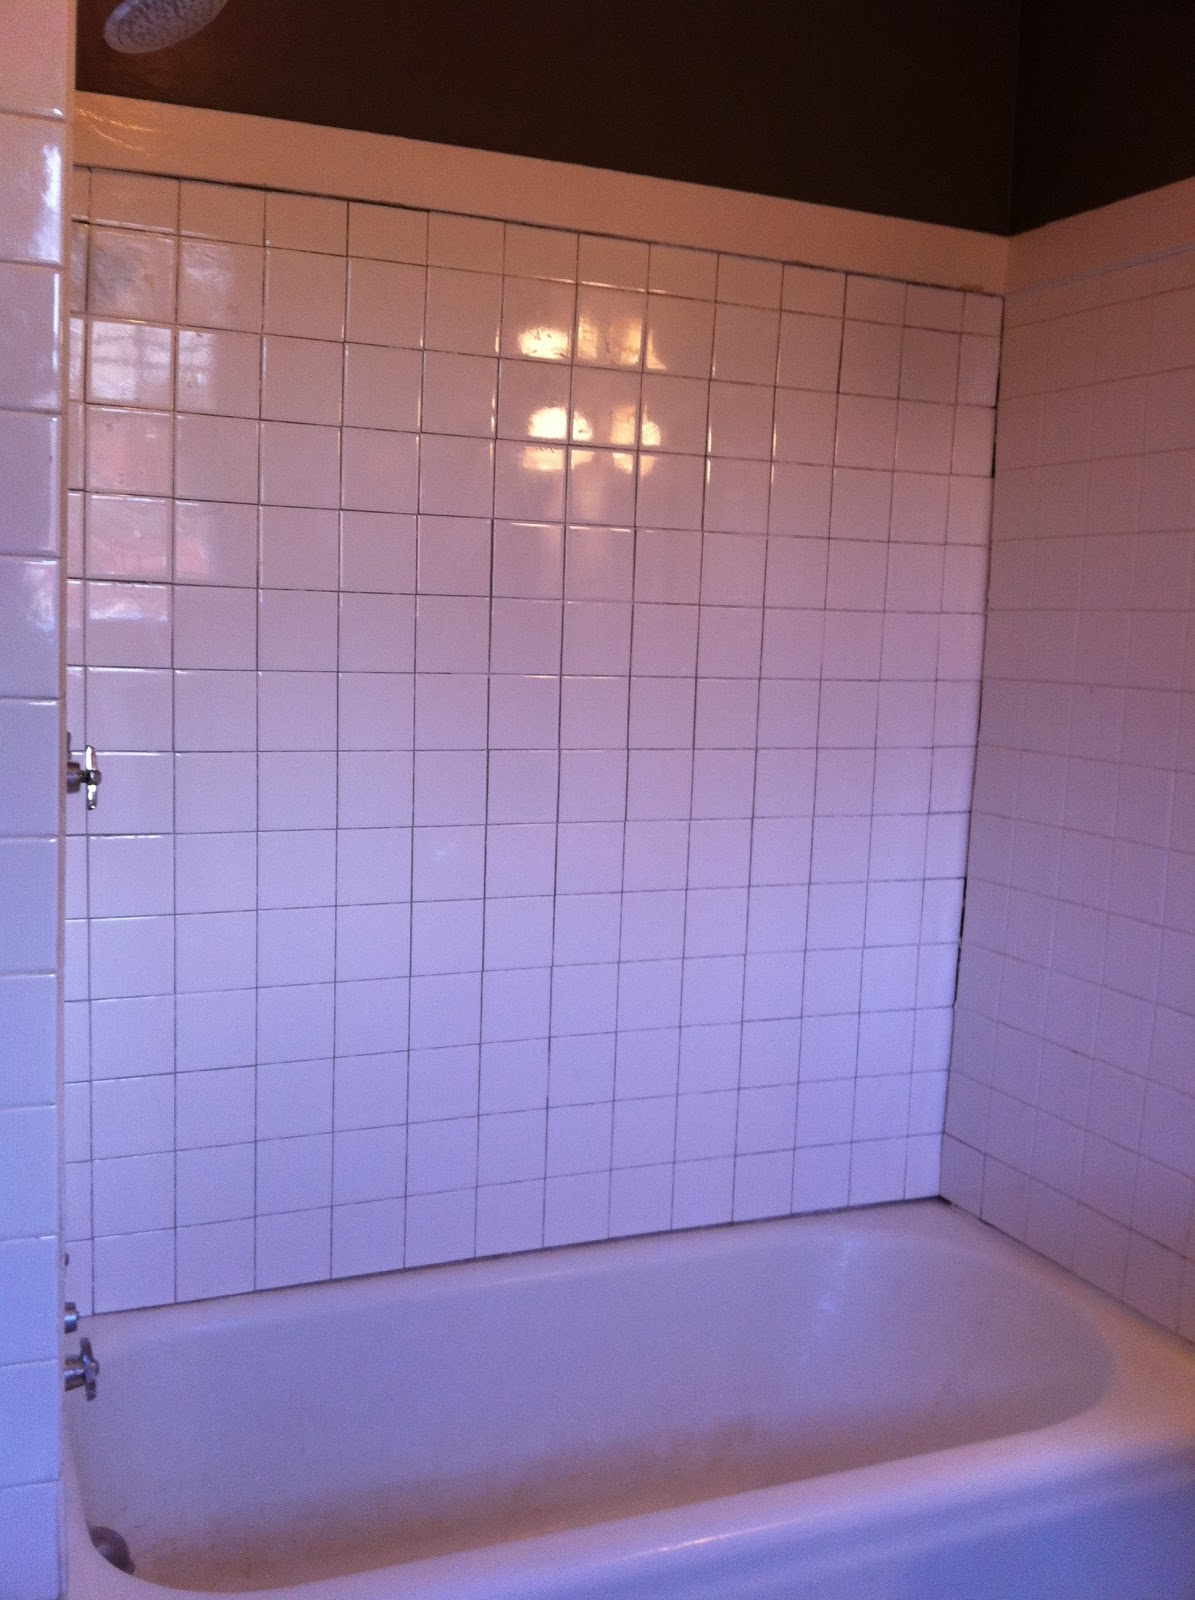 Dwell And Tell Bathroom Progress Retiling Shower Wall Part 2